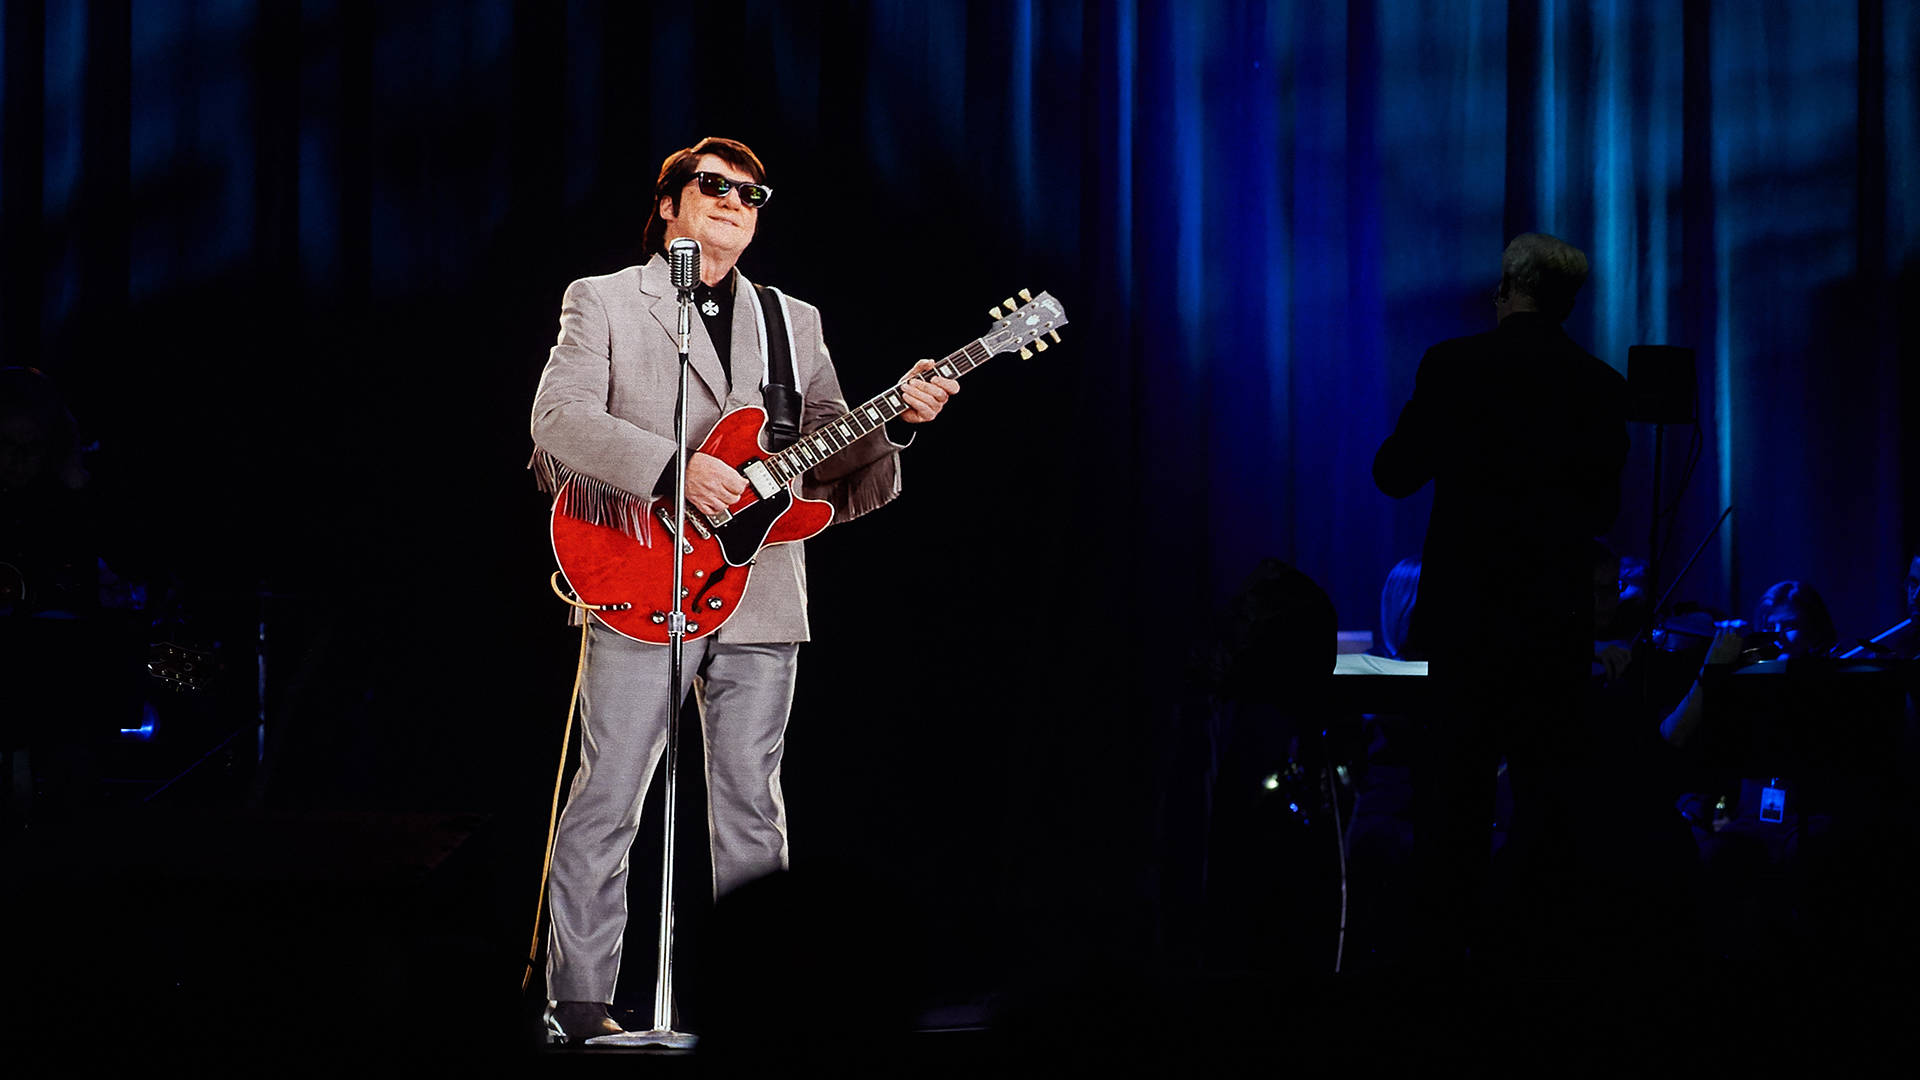 Roy Orbison in Concert during The Hologram UK Tour at Eventim Apollo on April 19, 2018 in London, England.  Tabatha Fireman/Getty Images for BASE Holograms